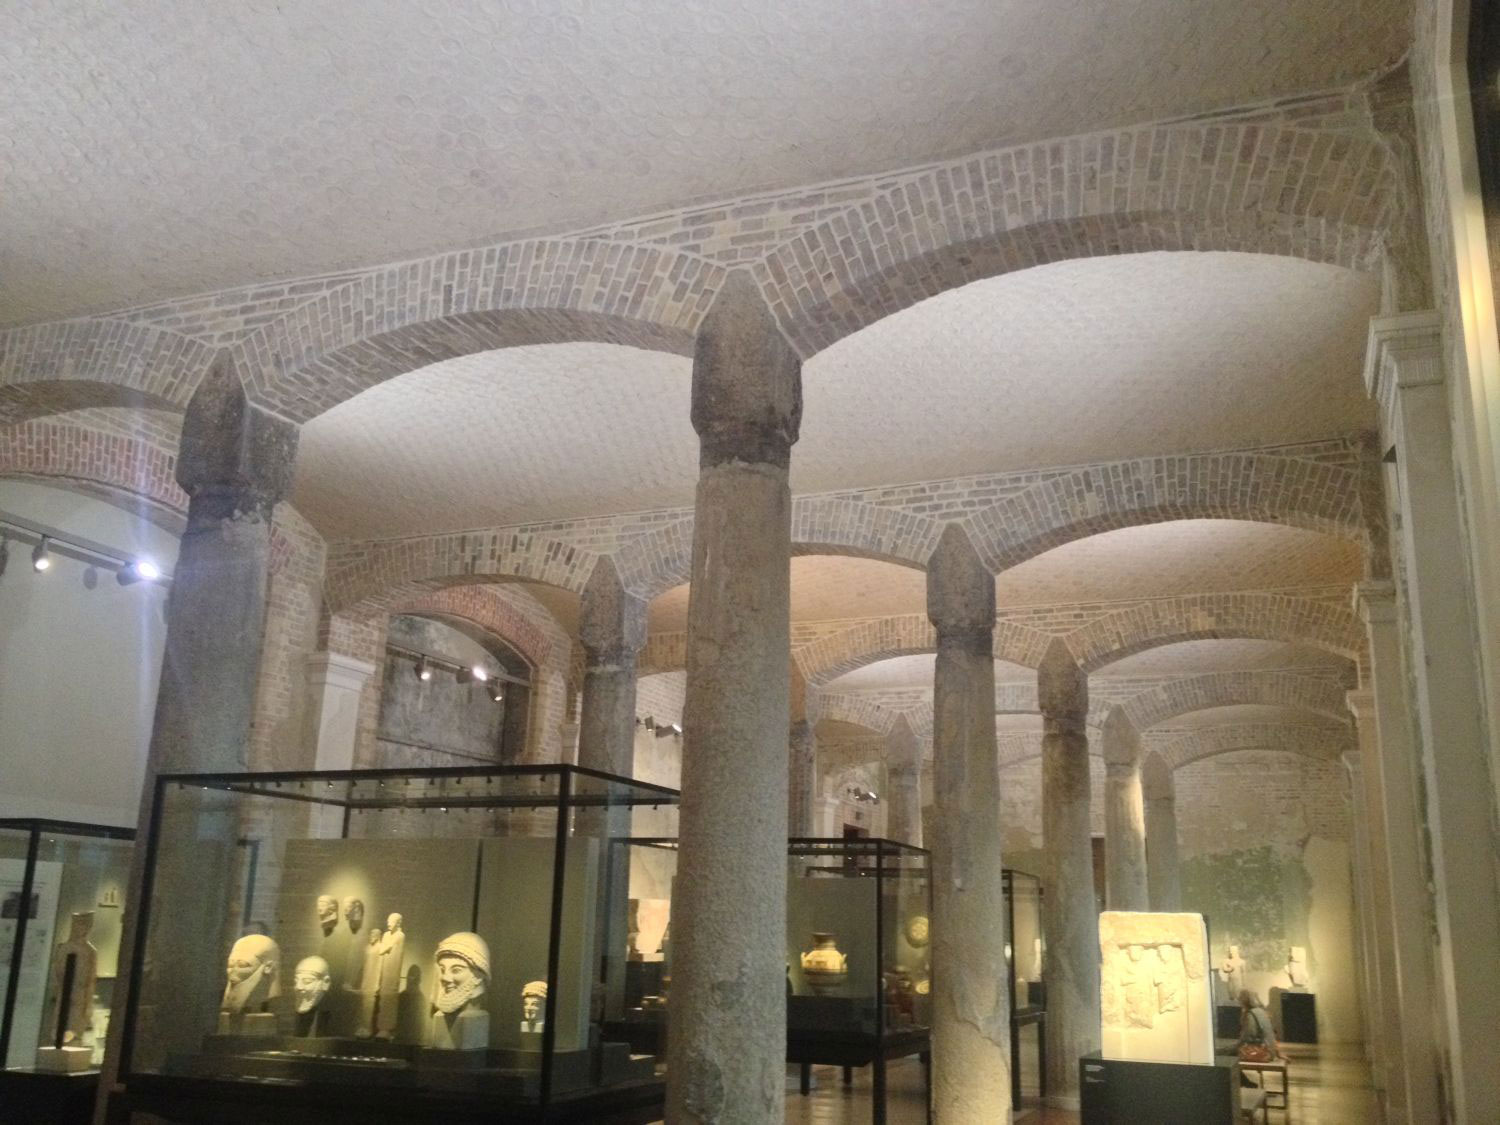 Museumsinsel Berlin - Neues Museum